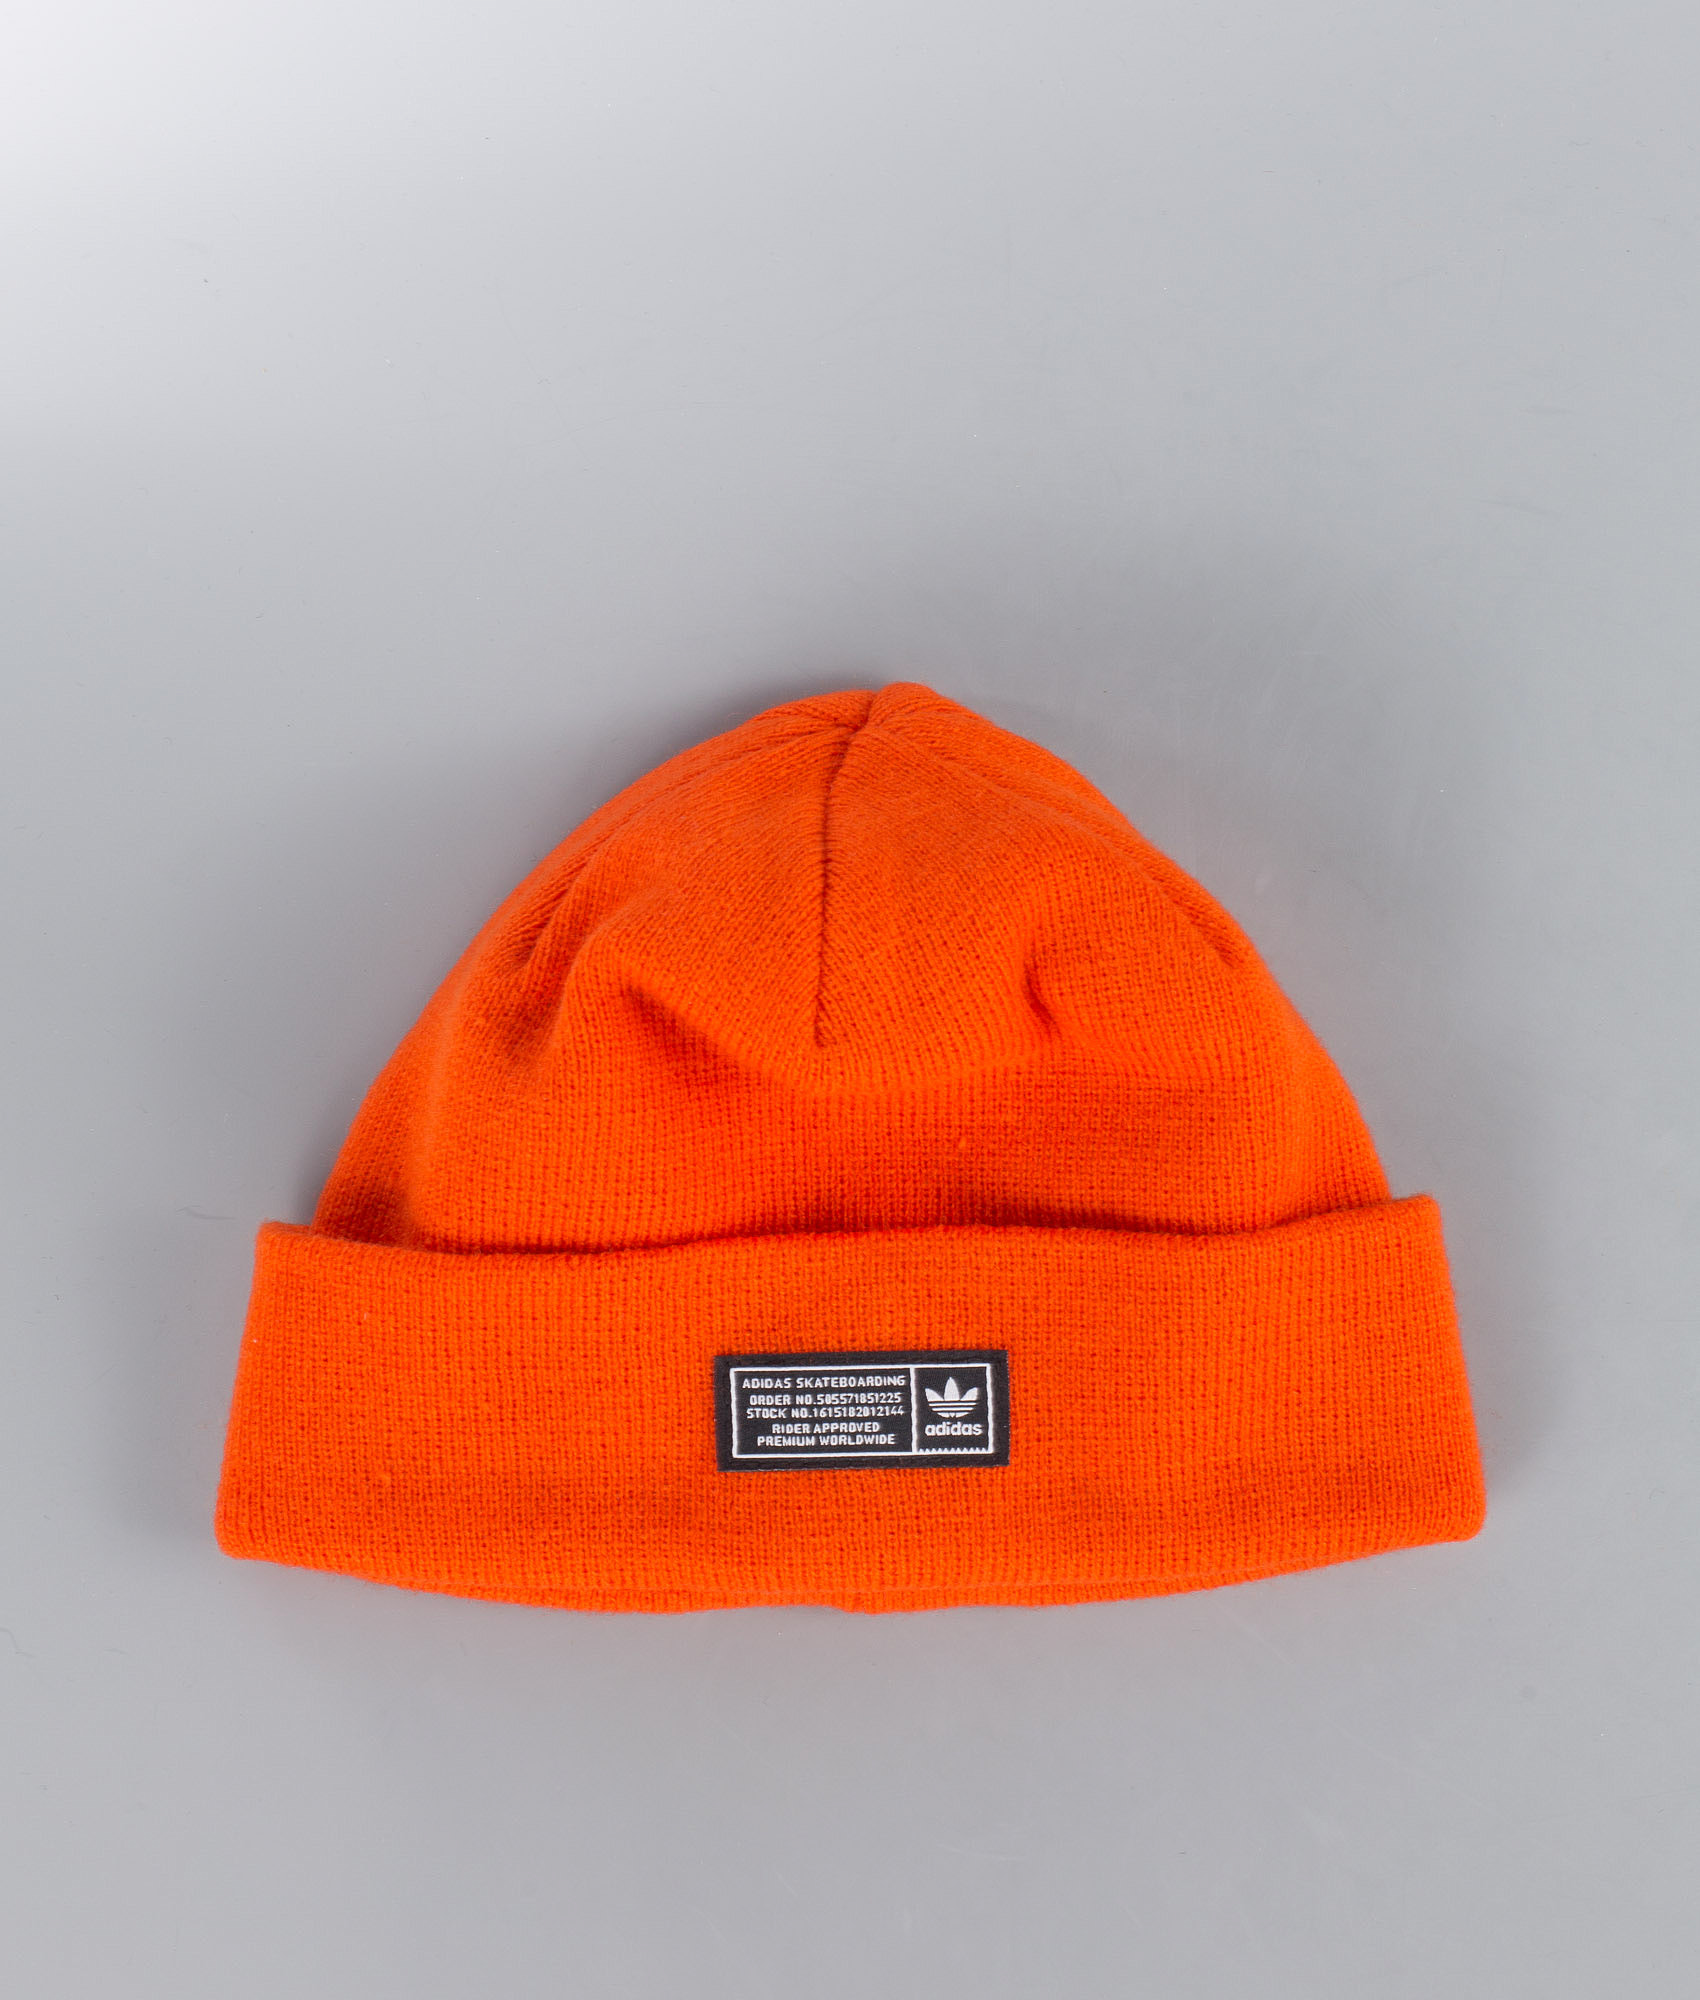 80a2ef82c Adidas Skateboarding Joe Beanie Collegiate Orange